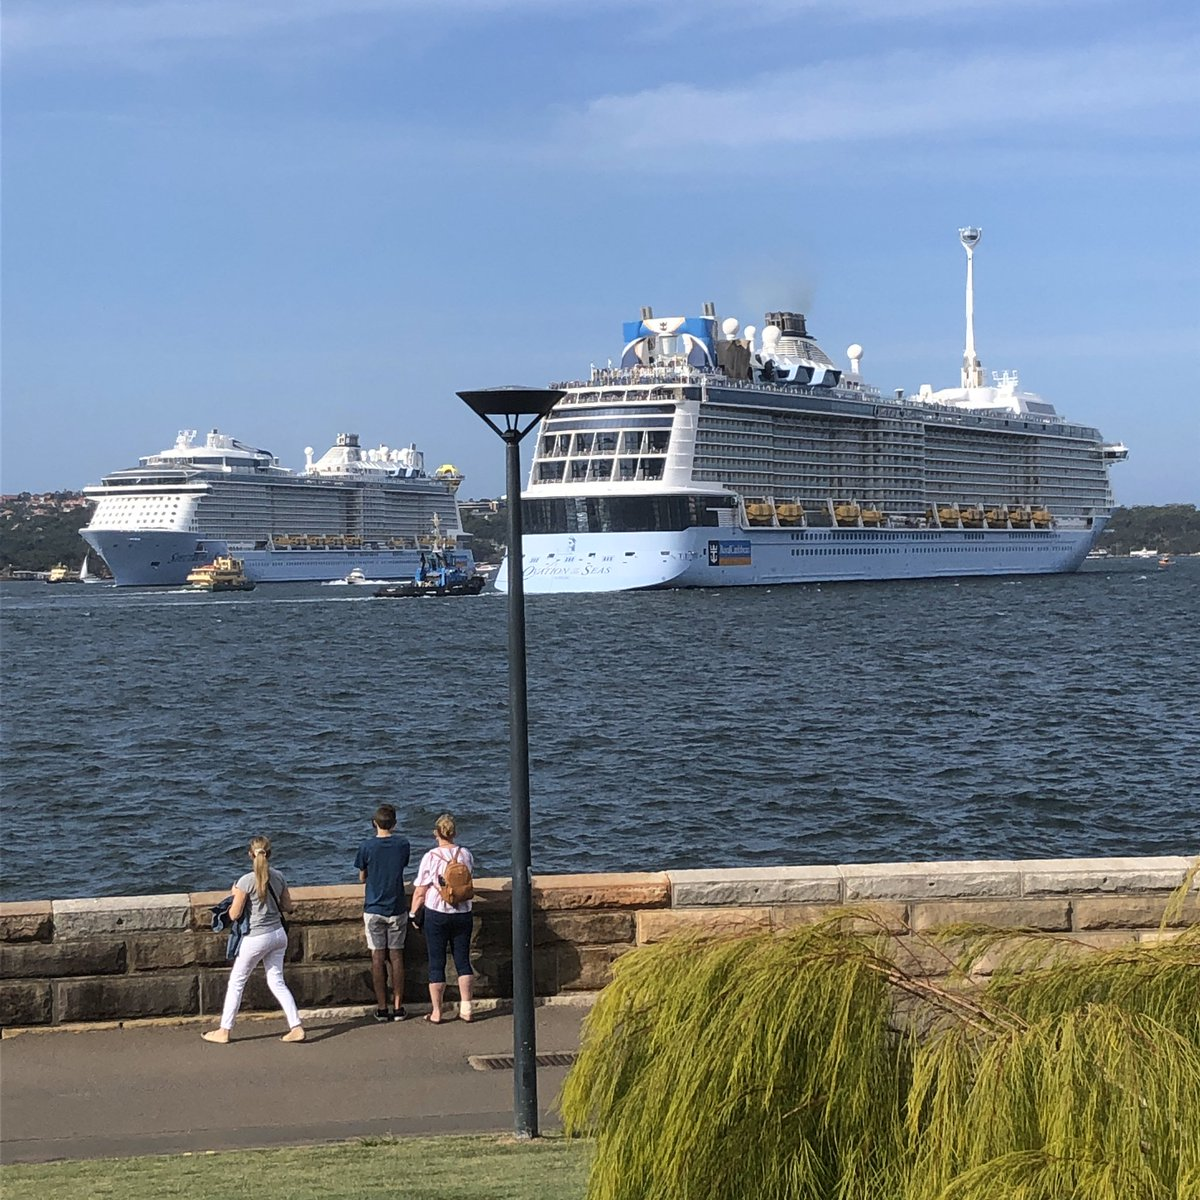 """Ron on Twitter: """"@RoyalCaribbean Spectrum of the Seas passing ..."""